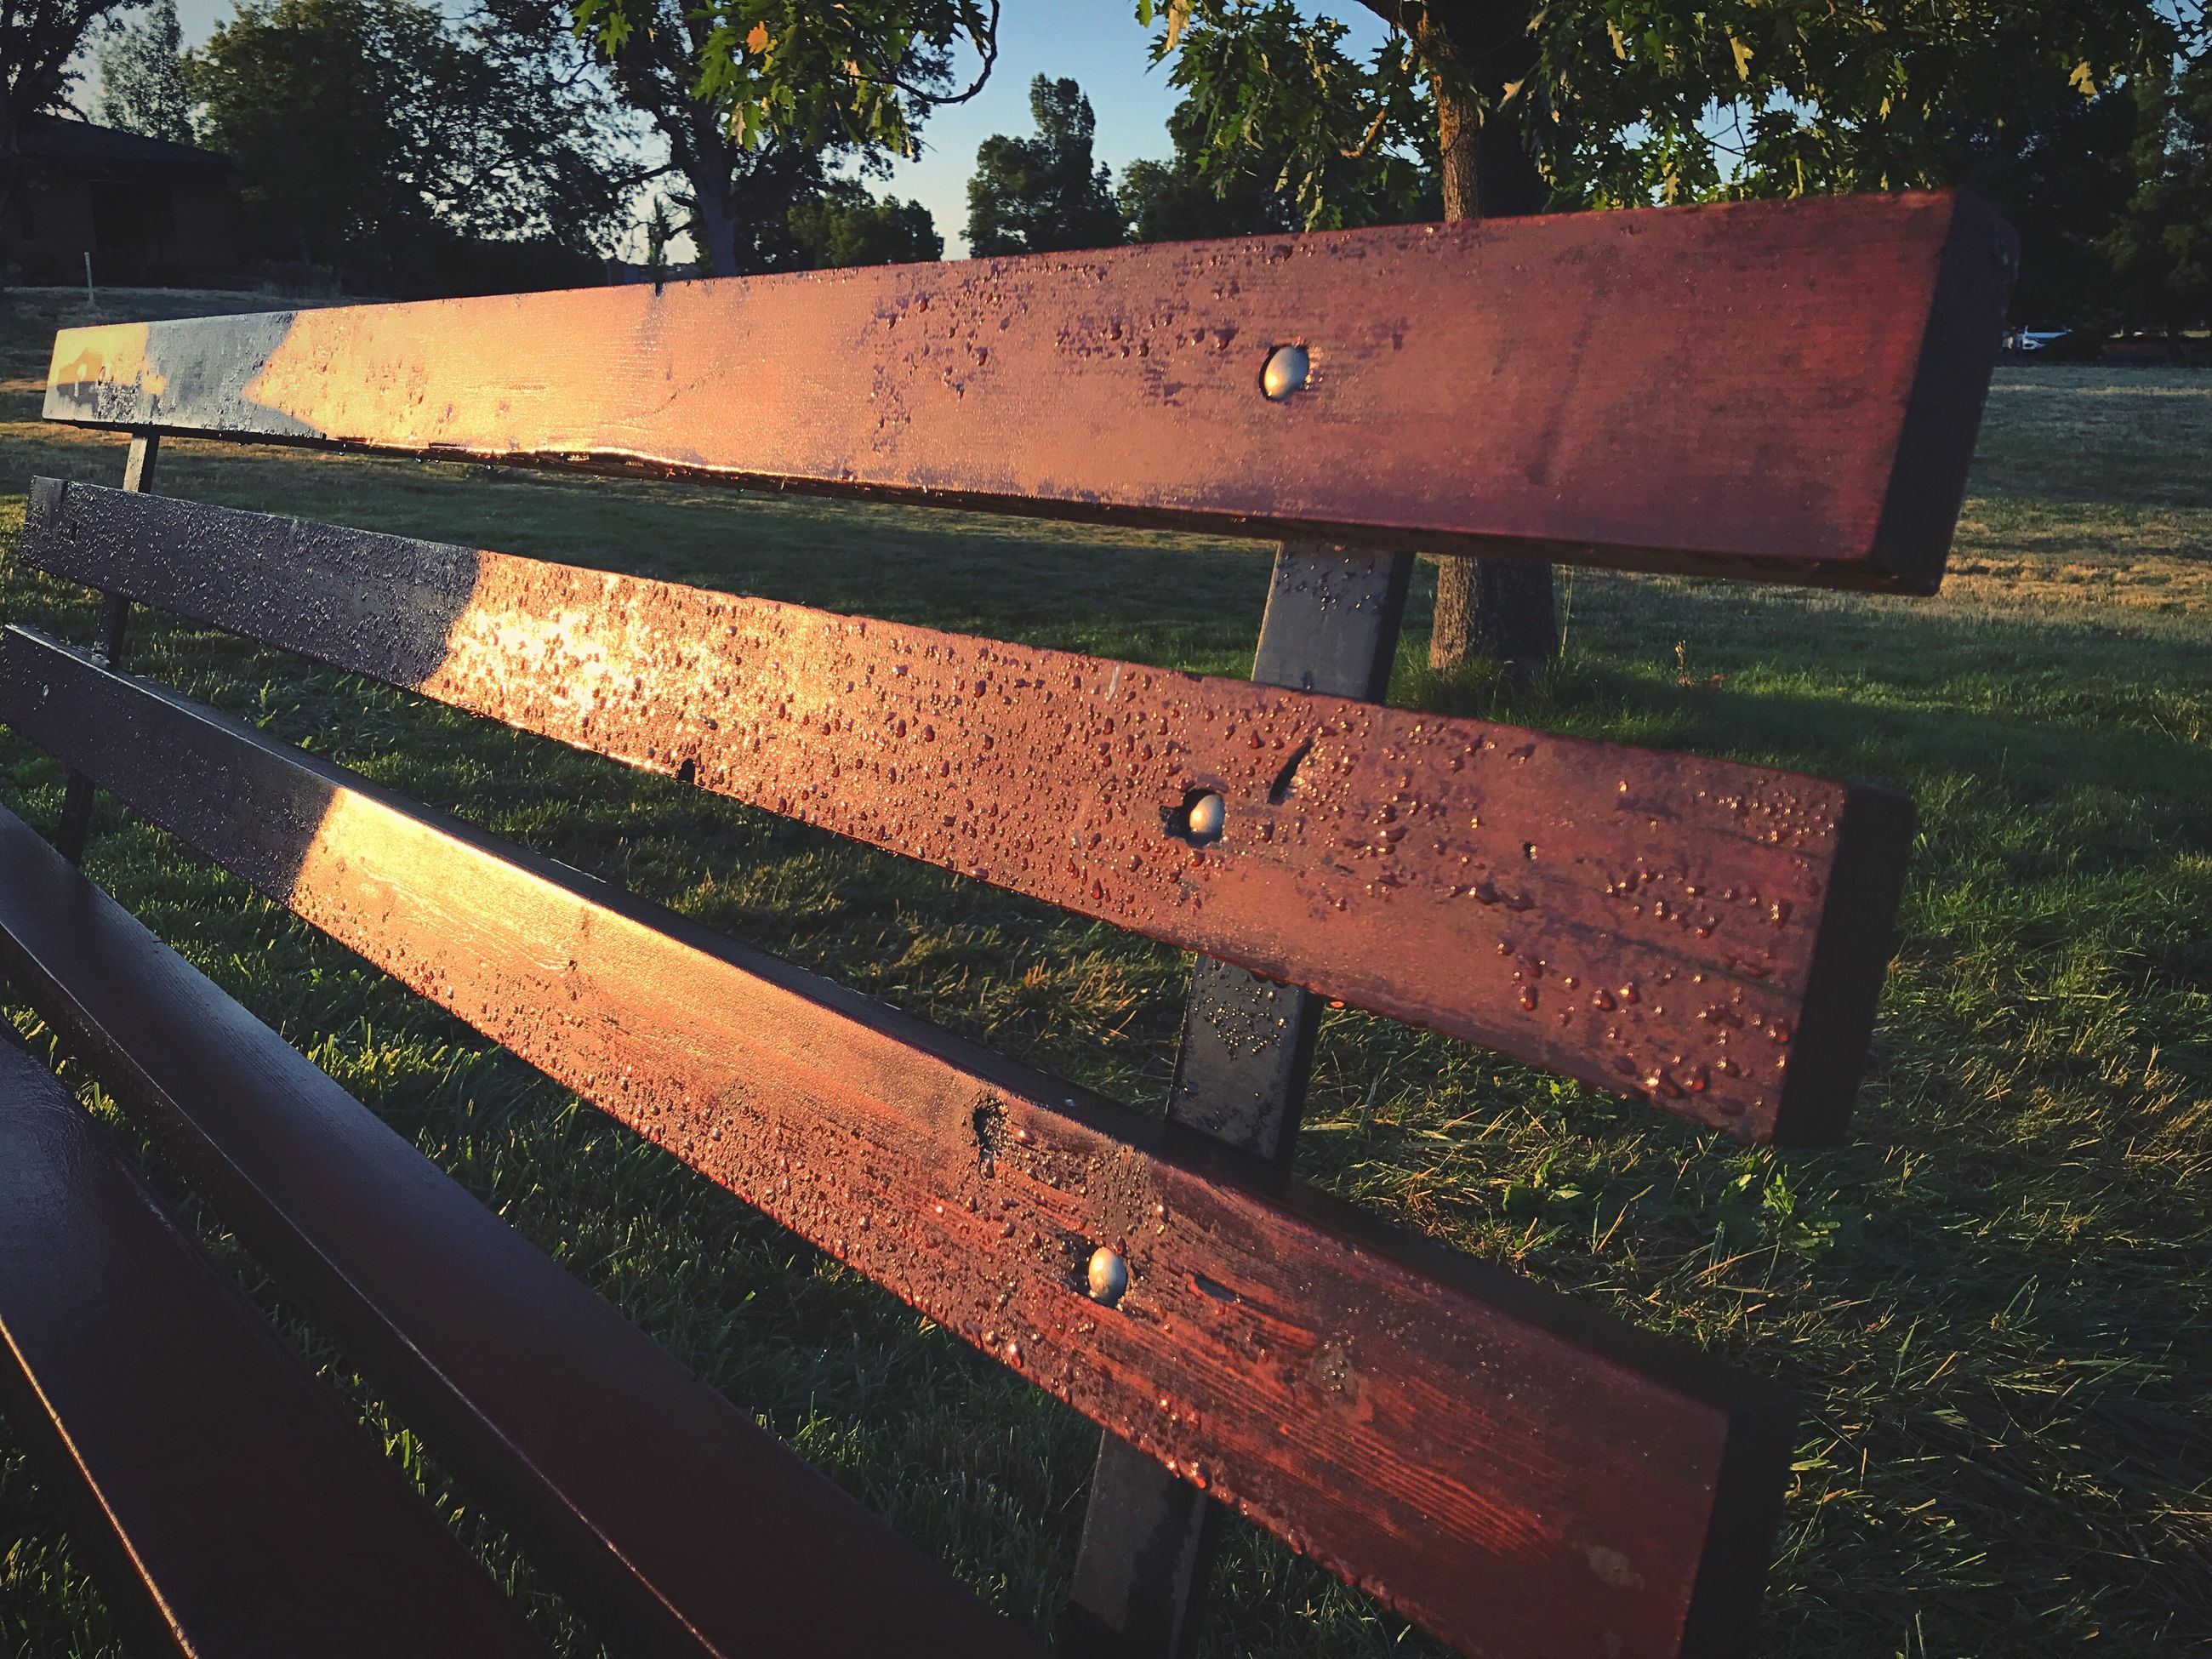 Water drops on wooden bench at park during sunrise